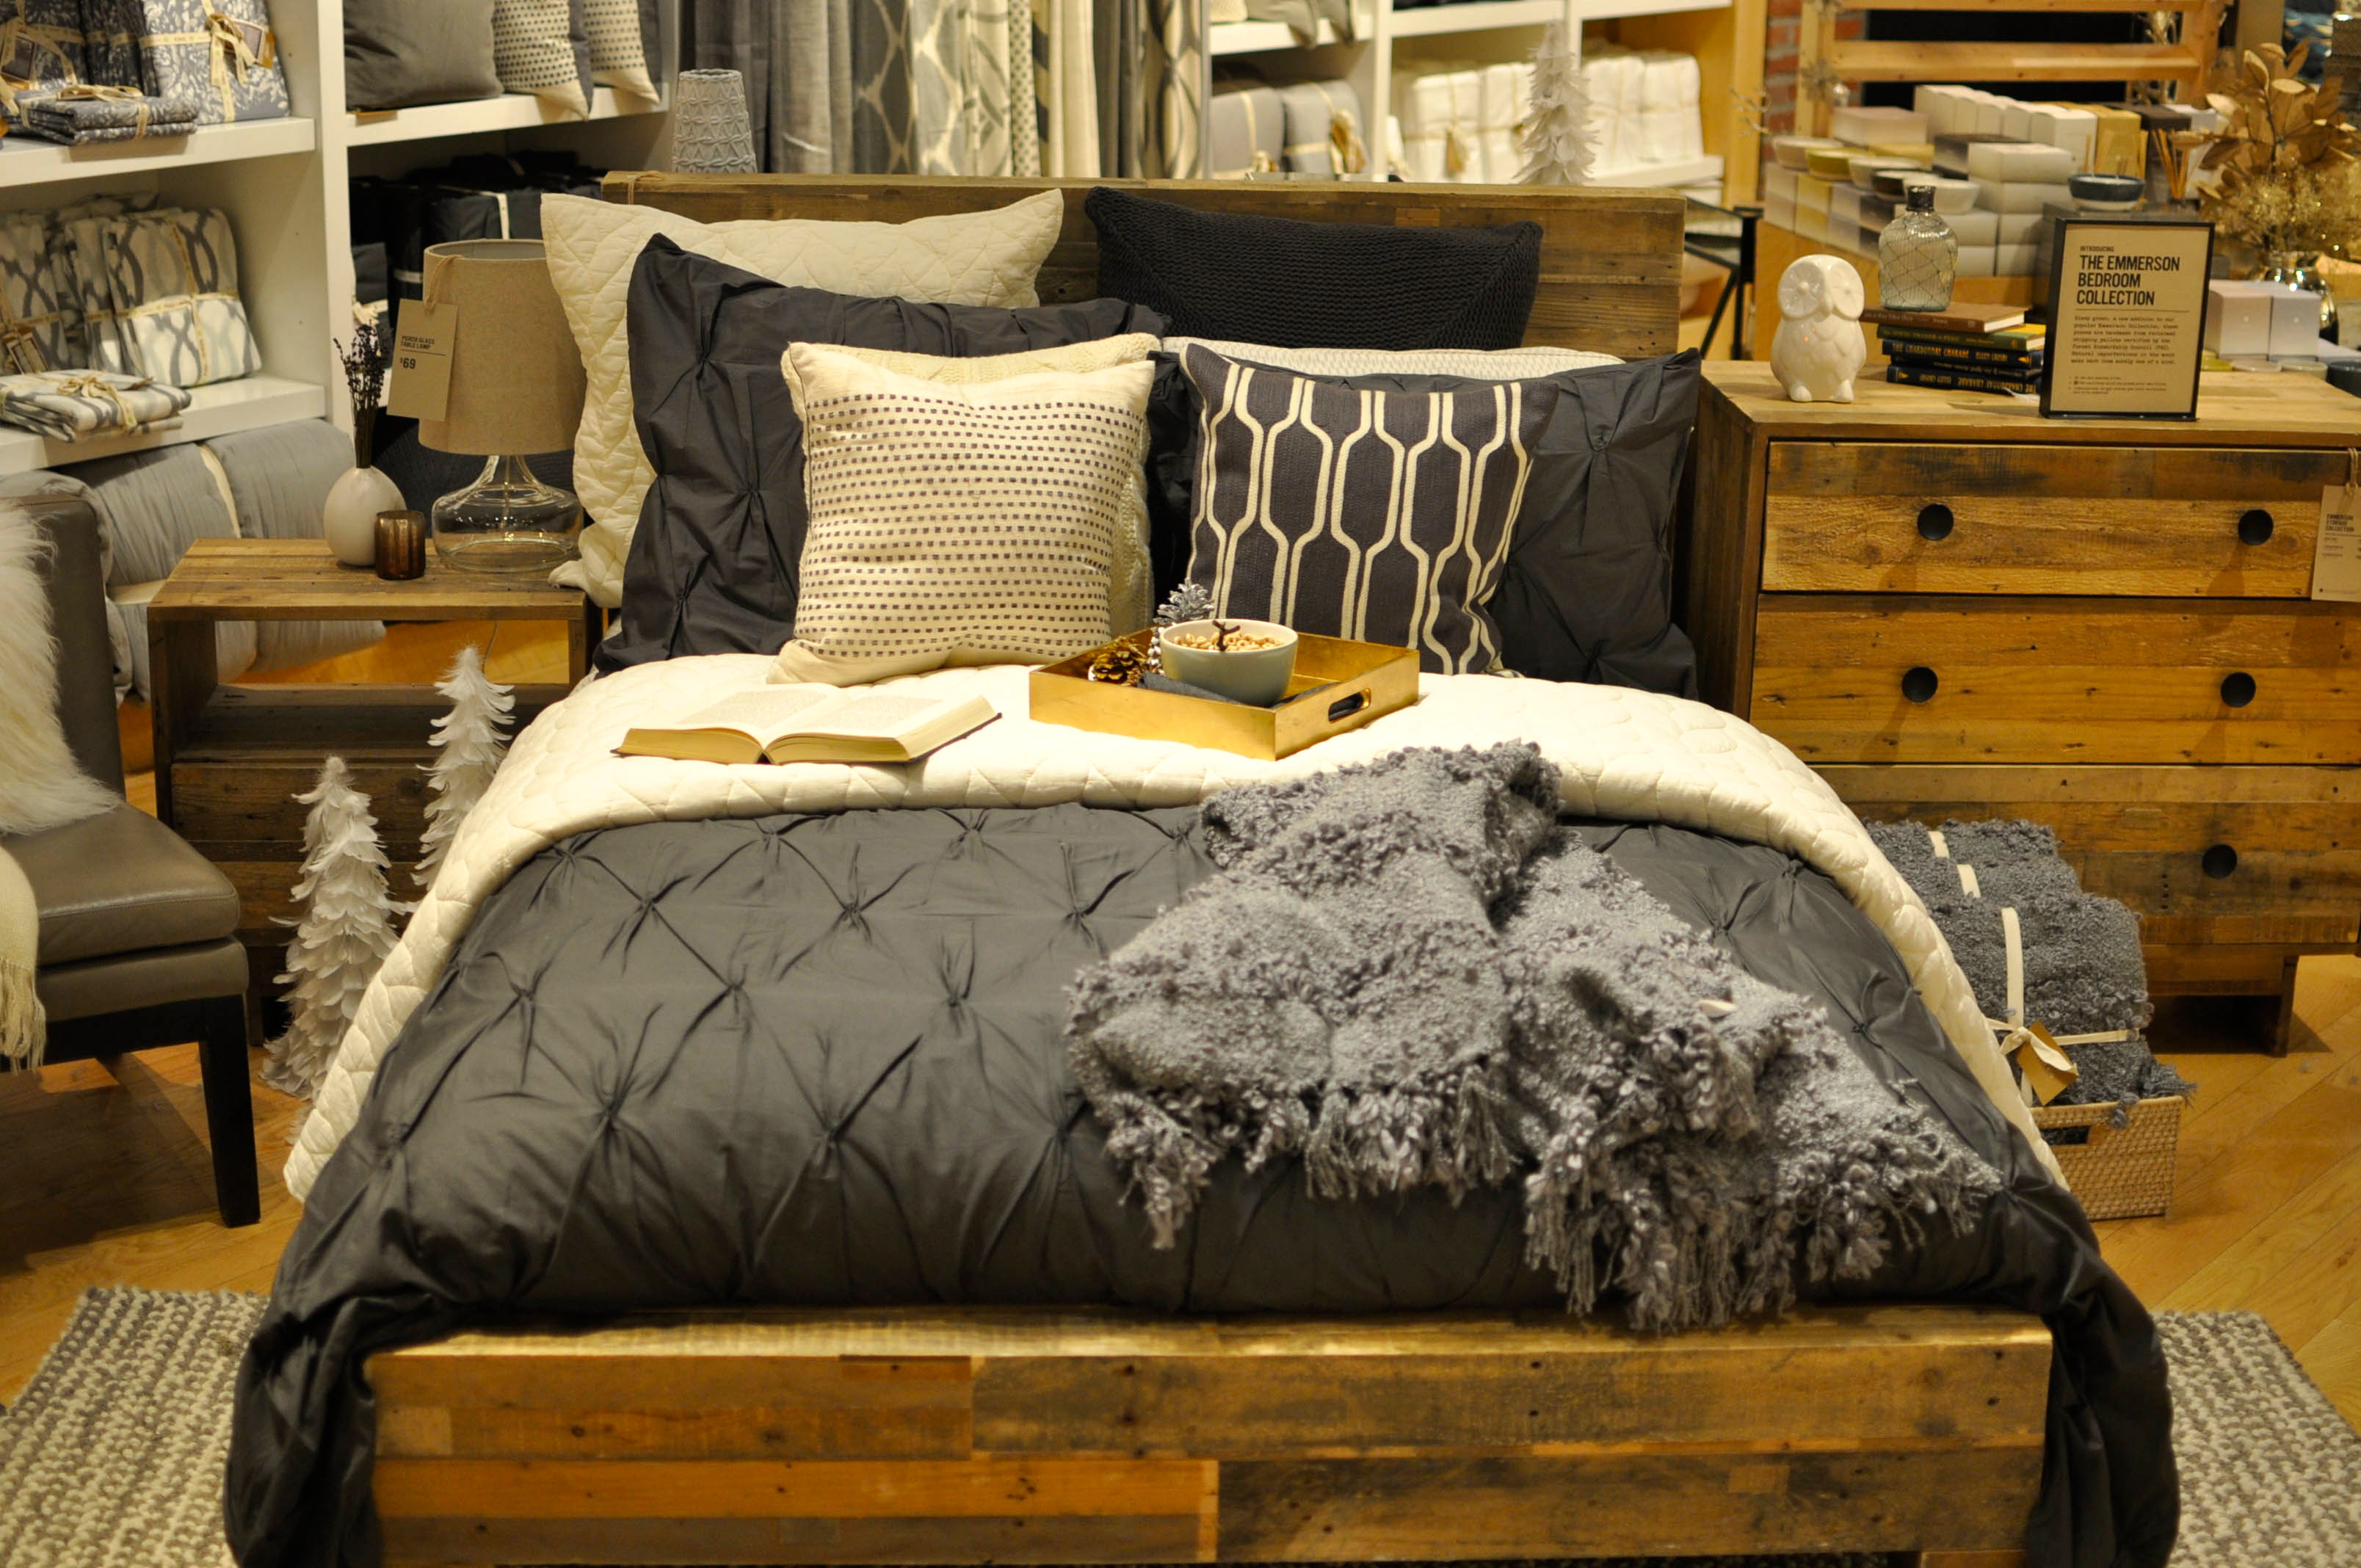 West elm collection new designs that define - How Gorgeous Is The West Elm Holiday Collection I Just Want To Snuggle Up